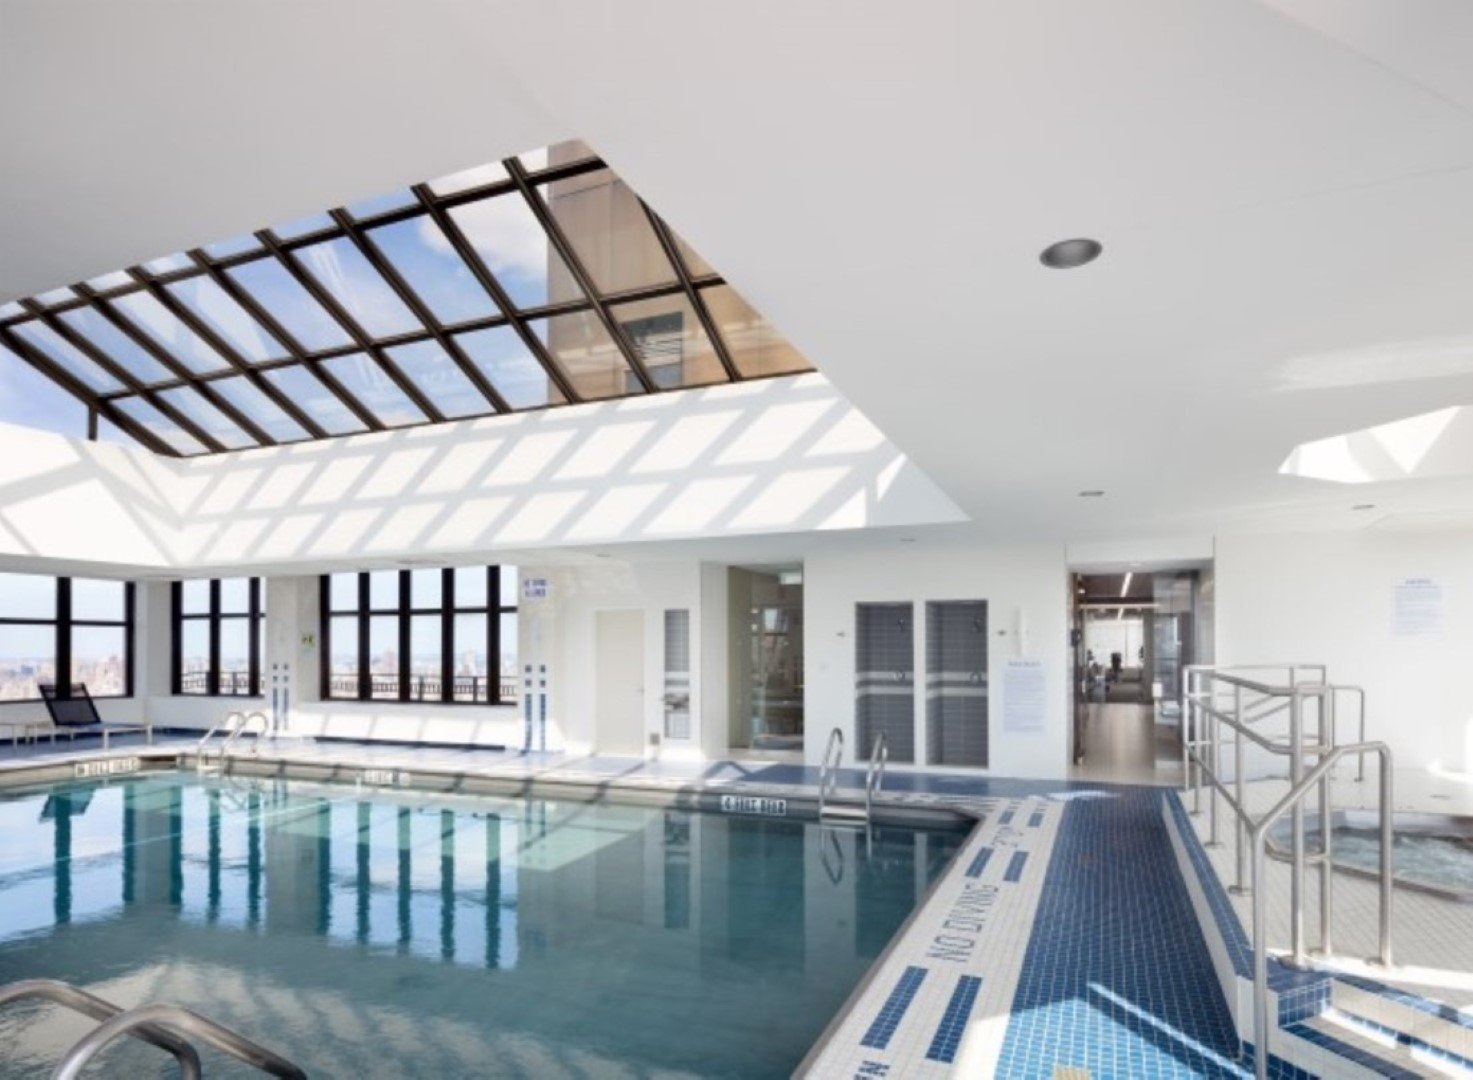 Pool at 56th Street Symphony House Apartments, Midtown West, New York